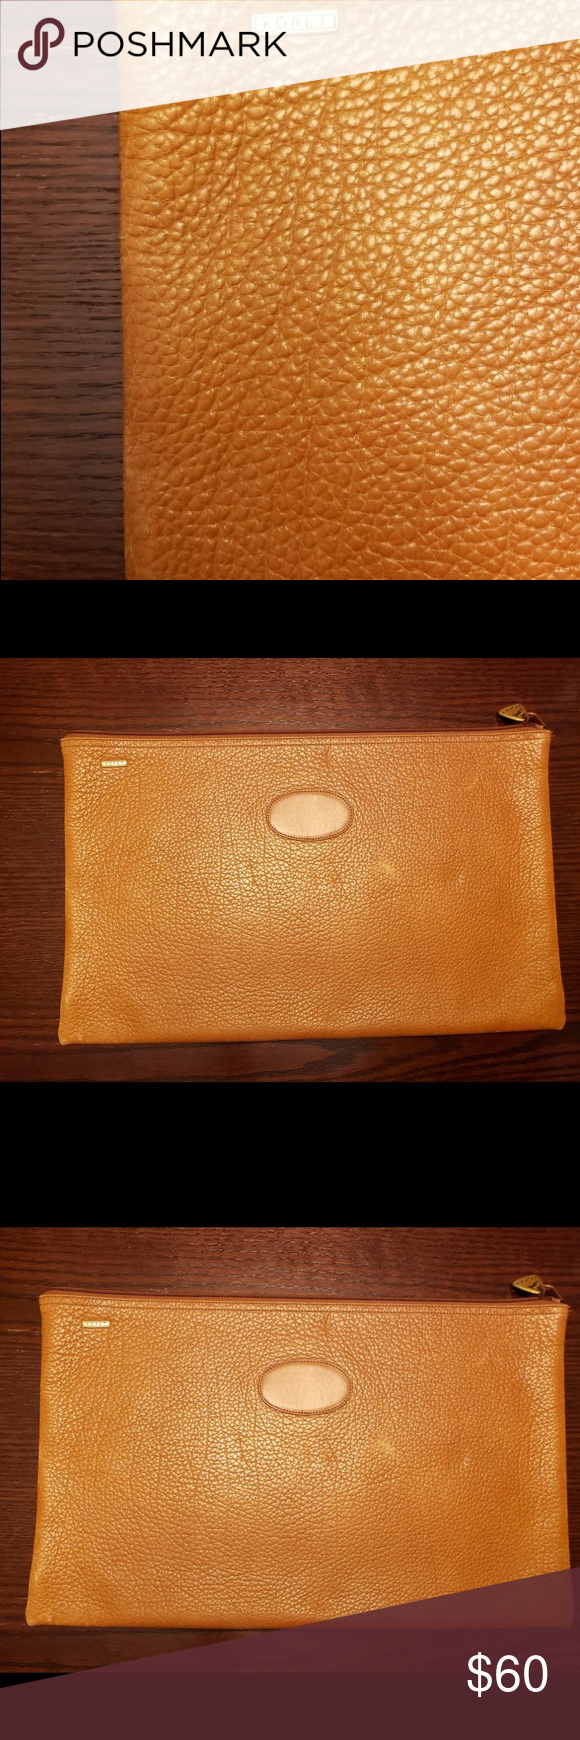 Koret Zippered Leather Portfolio Clutch Koret 100% Leather Camel Colored Zipper top closure. It was never used given as a gift many years ago it does have tiny discoloration on front from storage as shown in picture  Measures 16w x 10h Beautiful clutch to carry those important documents also could be Unisex Koret Bags #importantdocuments